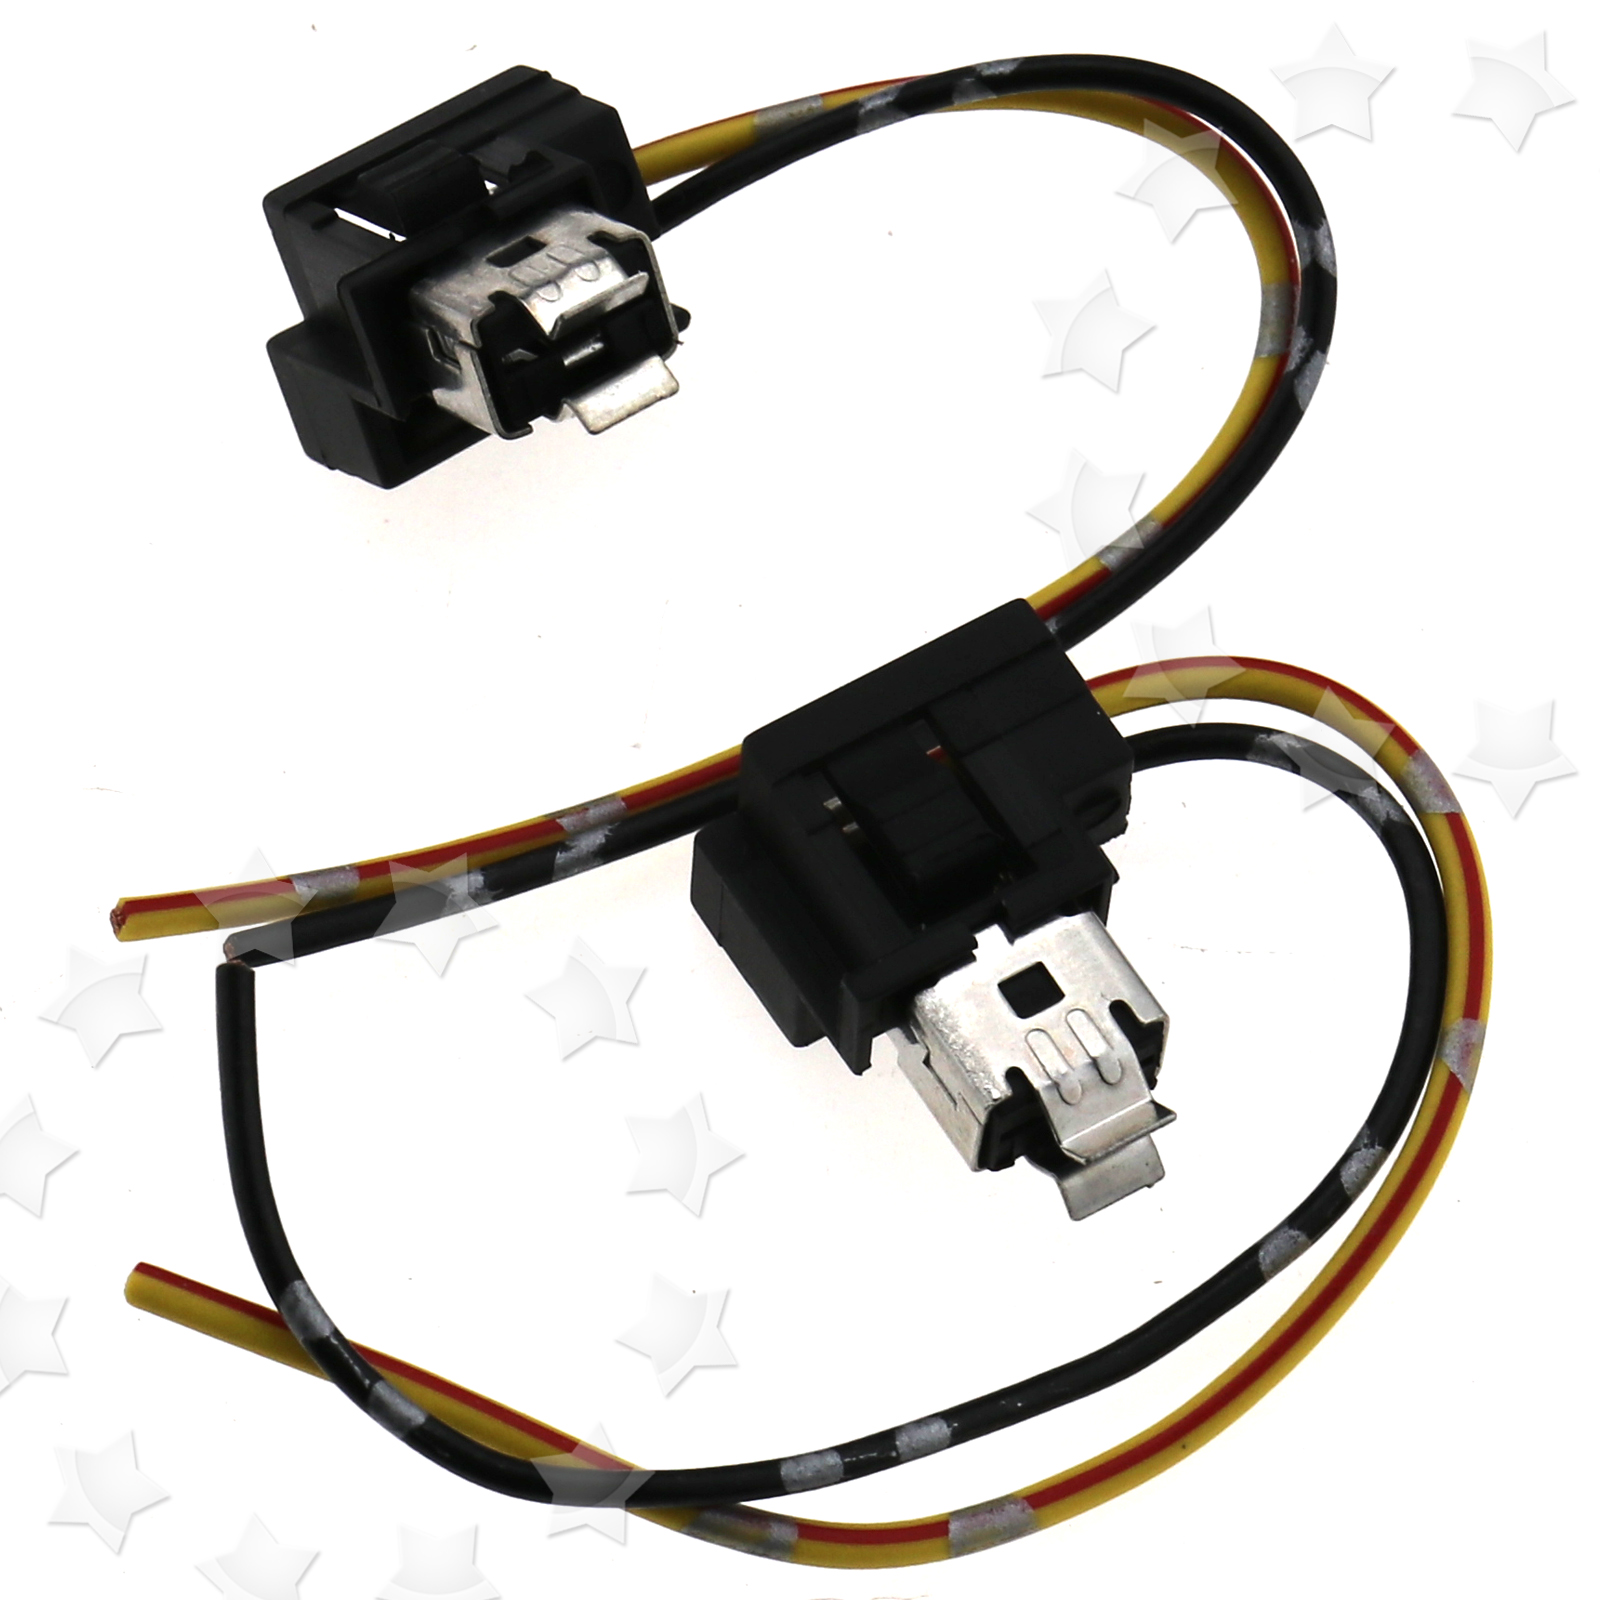 hight resolution of h1 headlight fog lamp bulb extension socket holder wiring connector wire wiring car head light bulb harness socket plug housing ebay